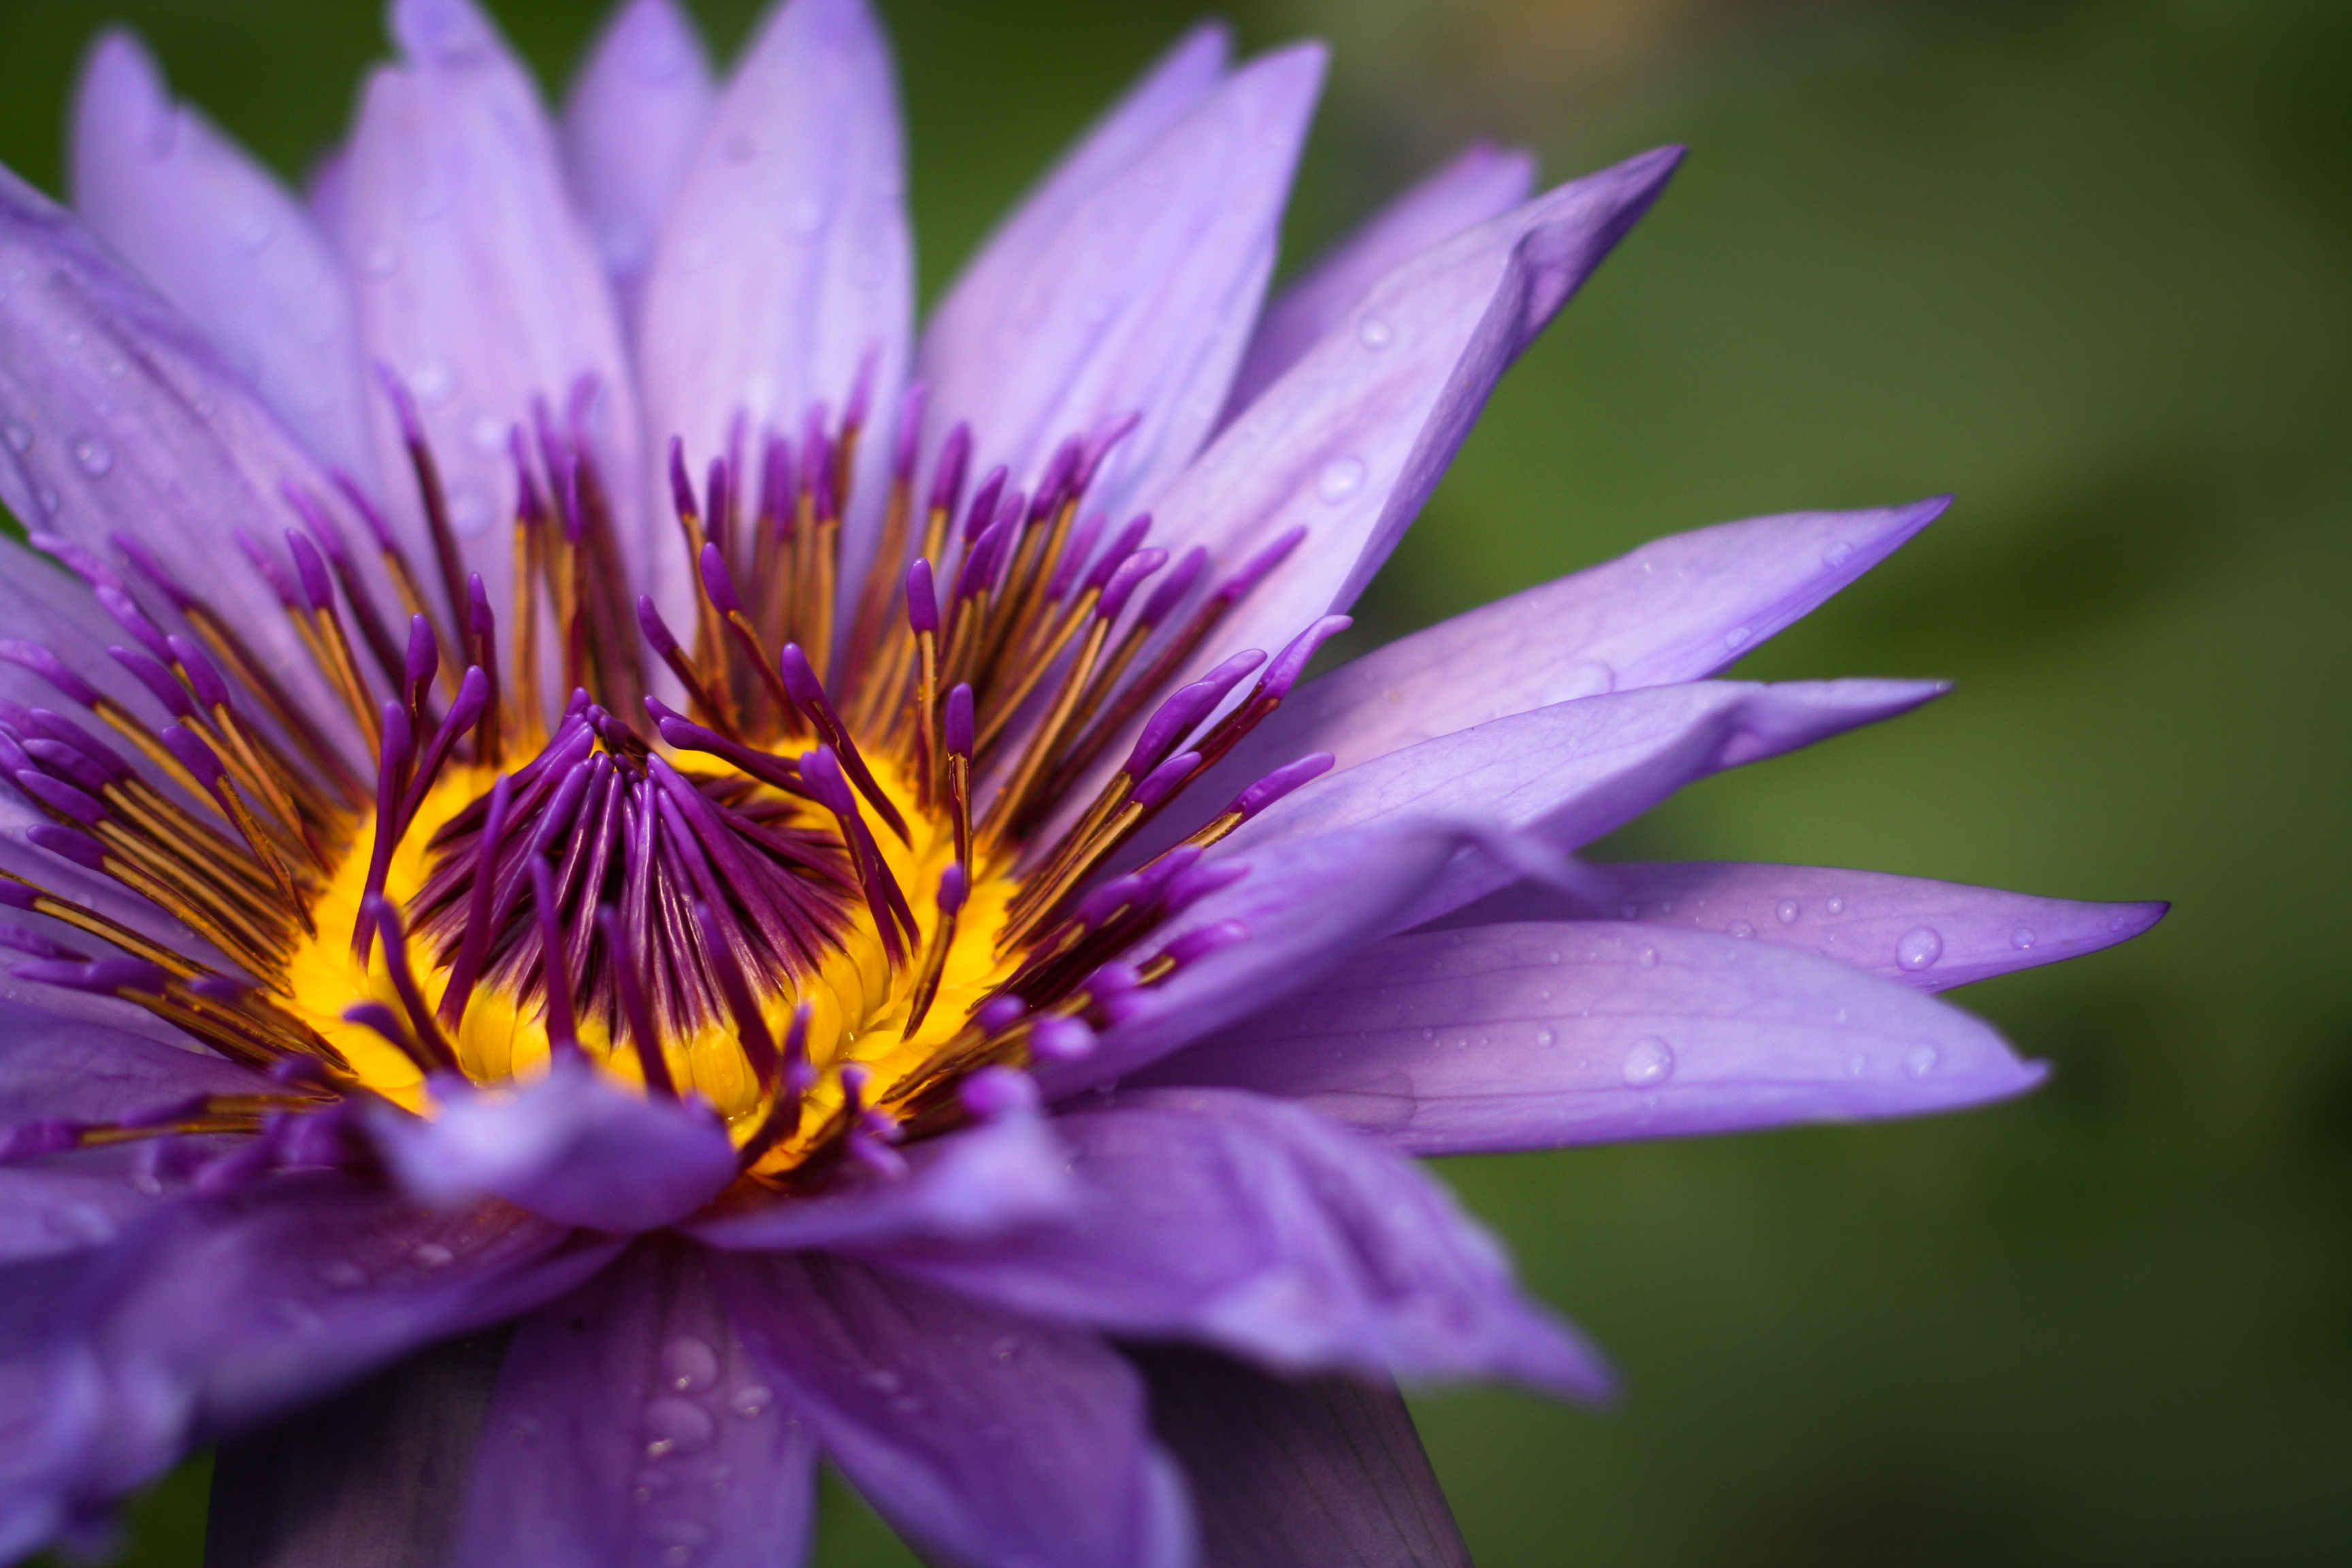 146387 download wallpaper Flowers, Flower, Petals, Macro, Purple, Violet, Drops screensavers and pictures for free